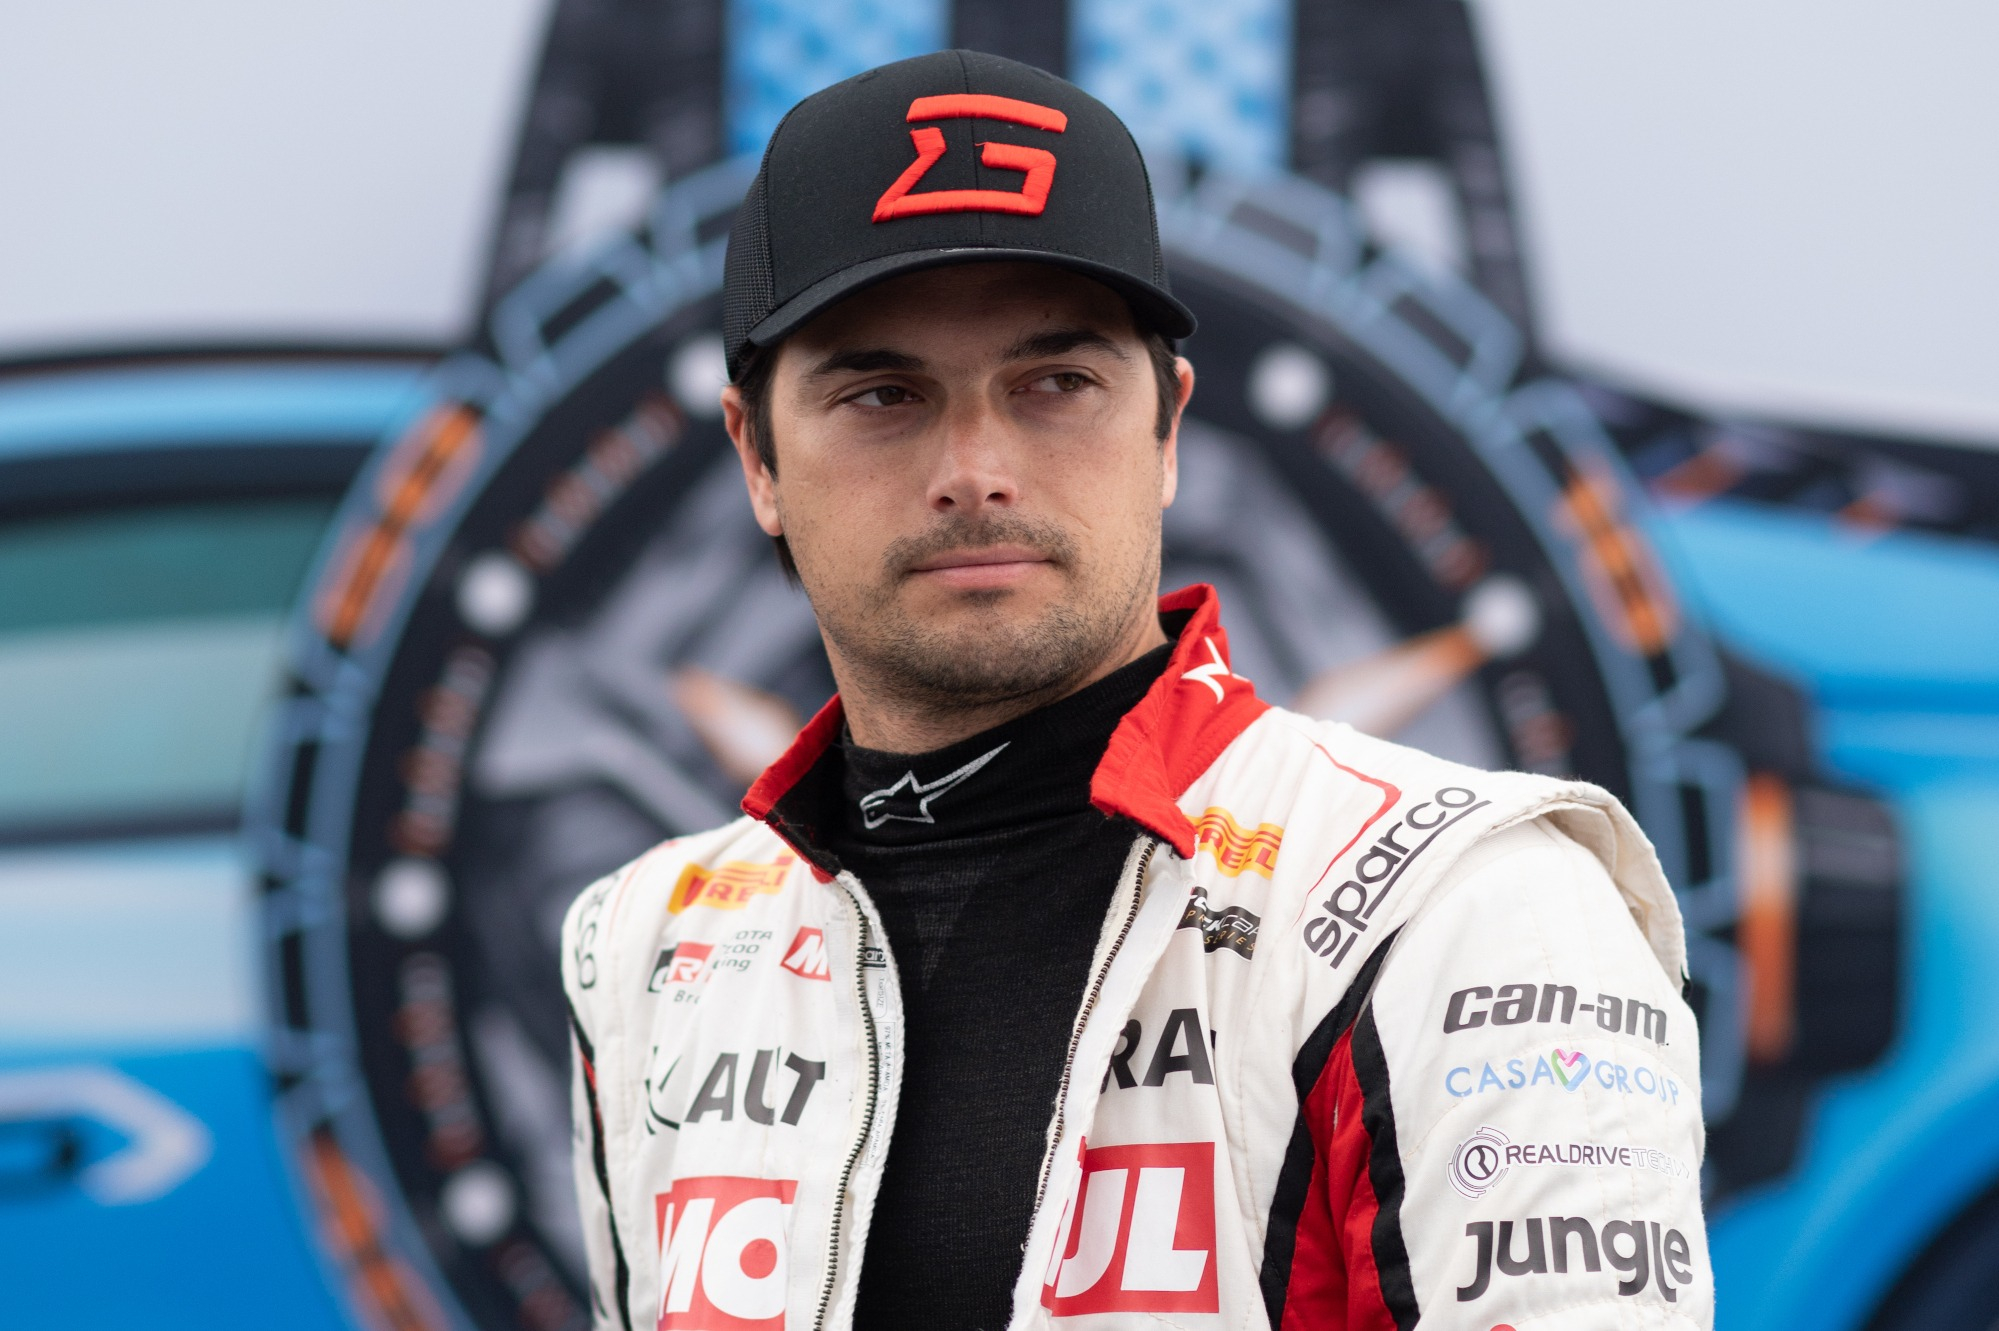 Piquet has resumed his rivalry with Antinucci from British Formula 3 in 2003